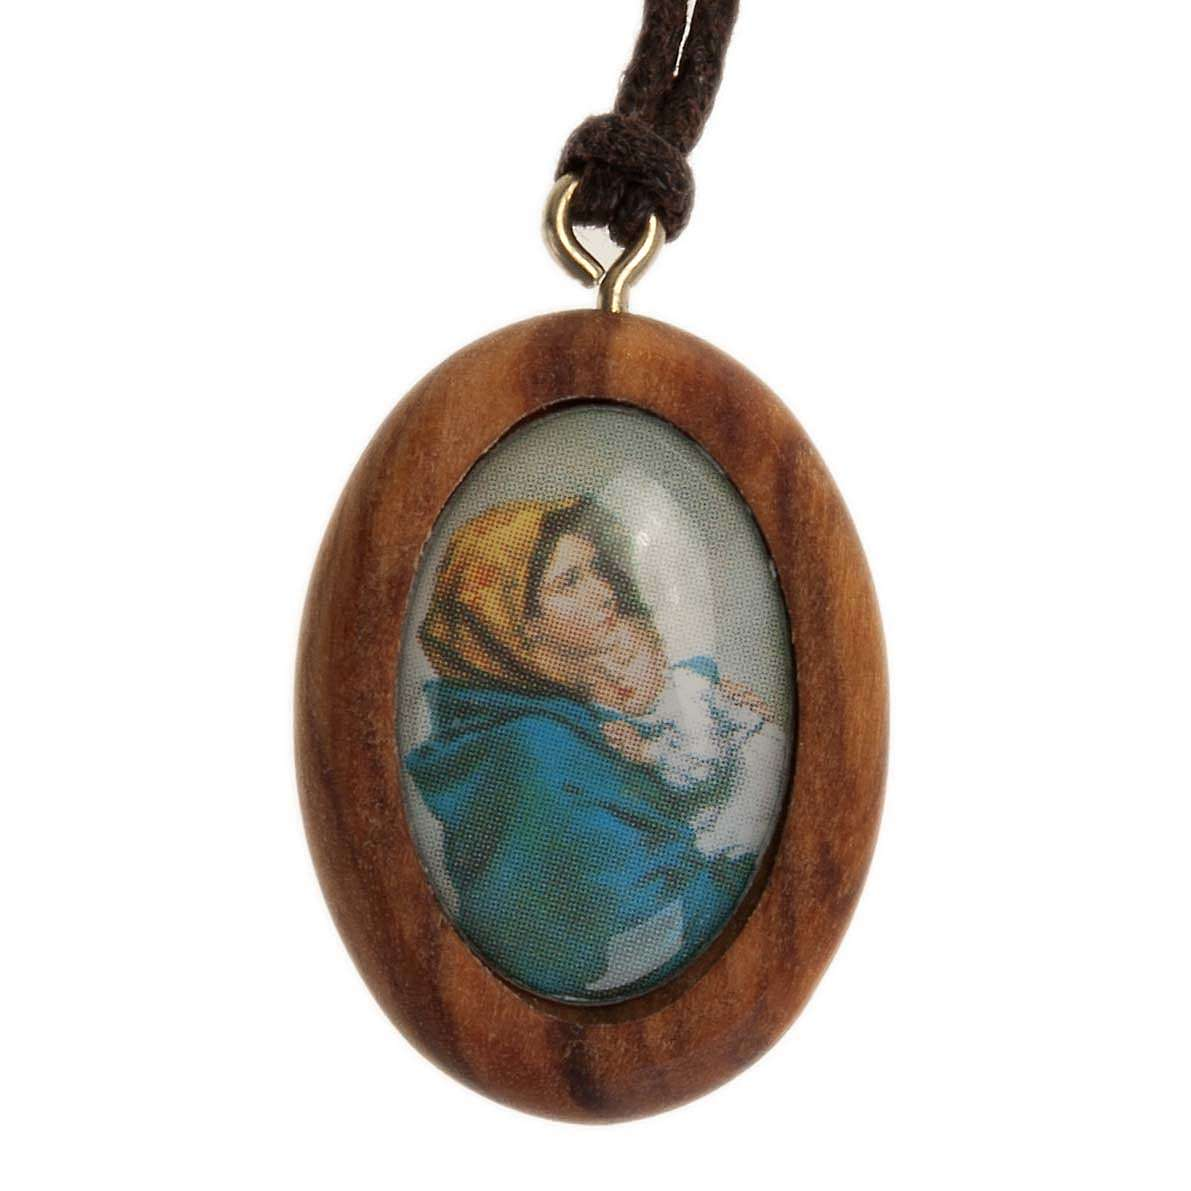 Olive pendant, oval with Ferruzzi's Madonna 4